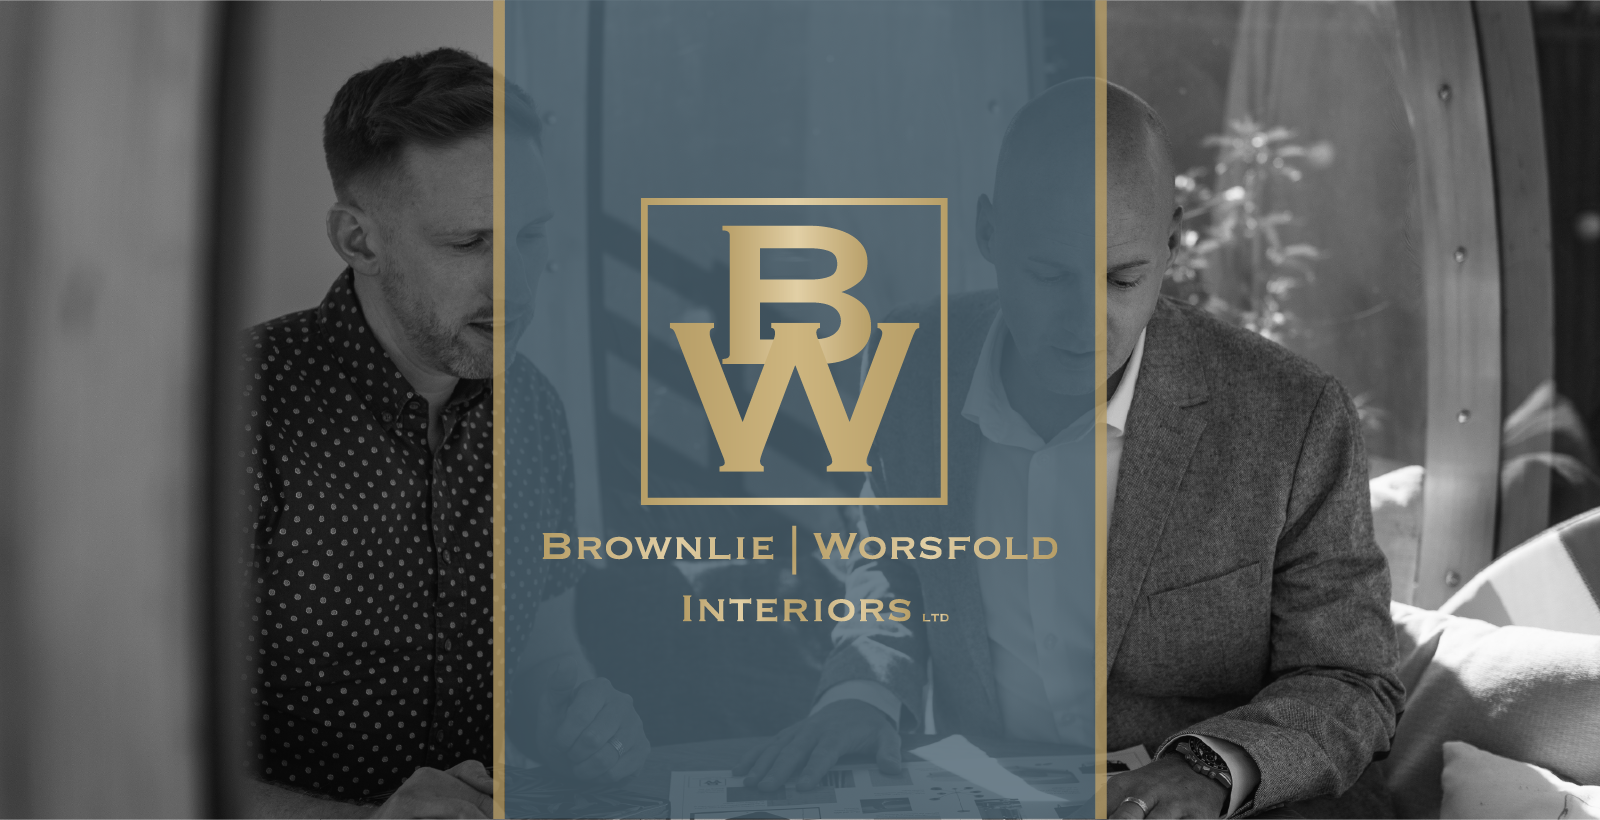 Scott Brownlie & Richard Worsfold of Brownlie|Worsfold Interiors Ltd